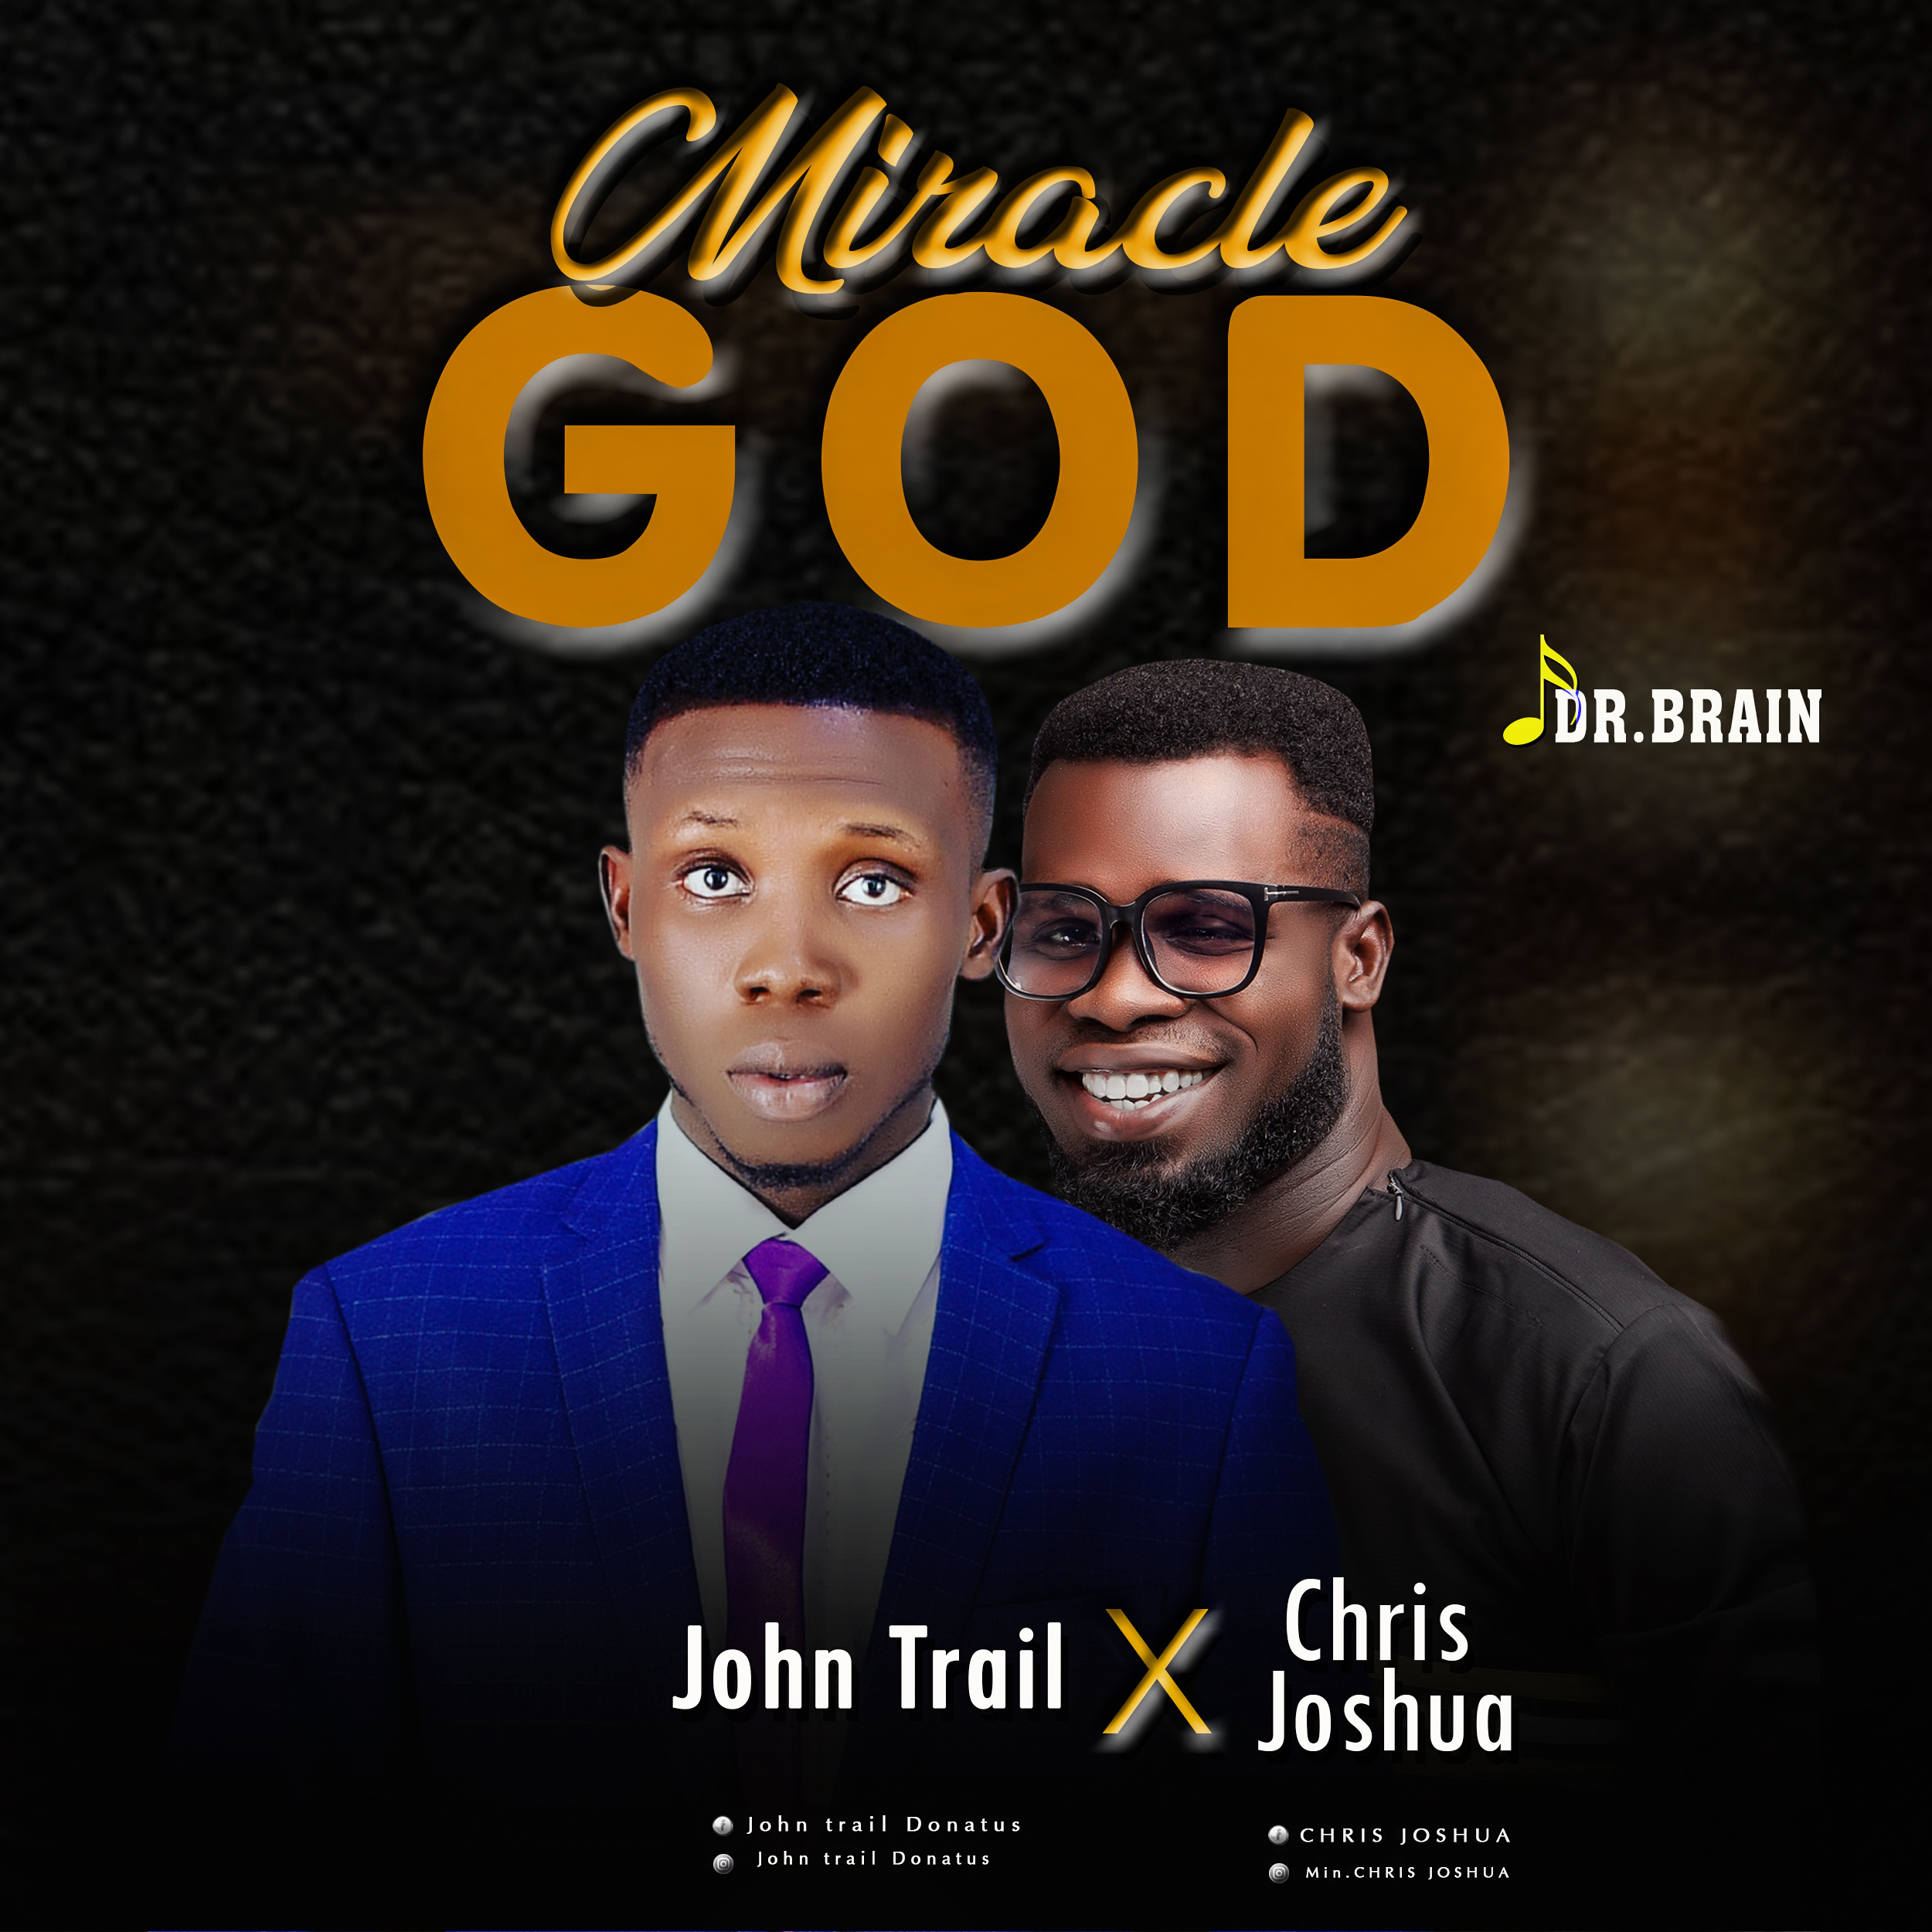 Download: John Trial Miracle God Ft Chris Joshua (Prod by Dr.Brain) Mp3